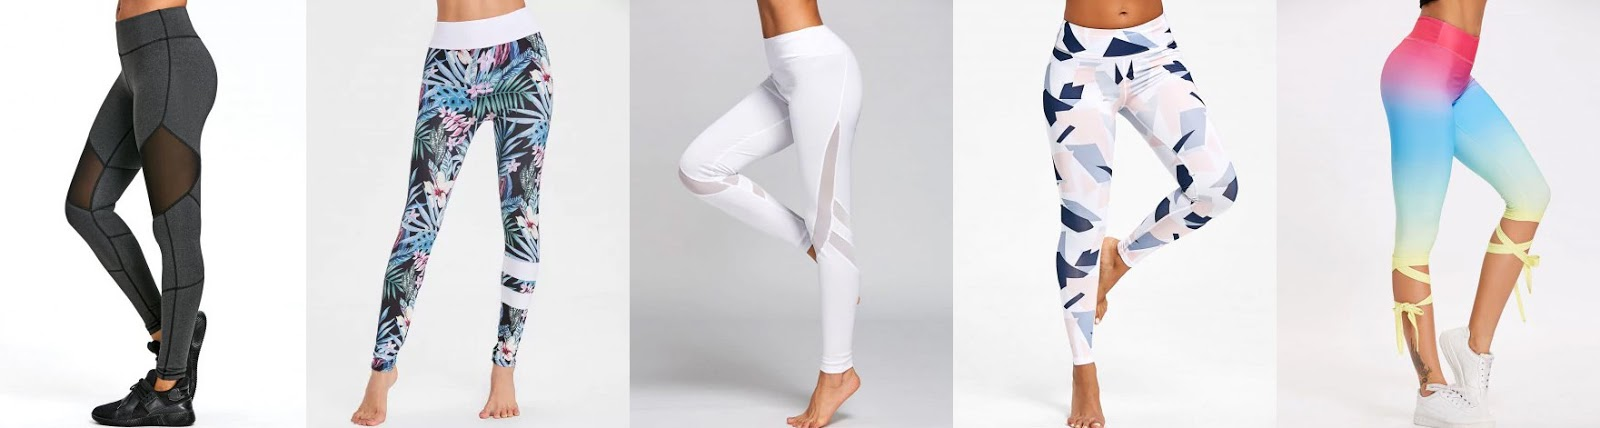 rosegal activewear leggings